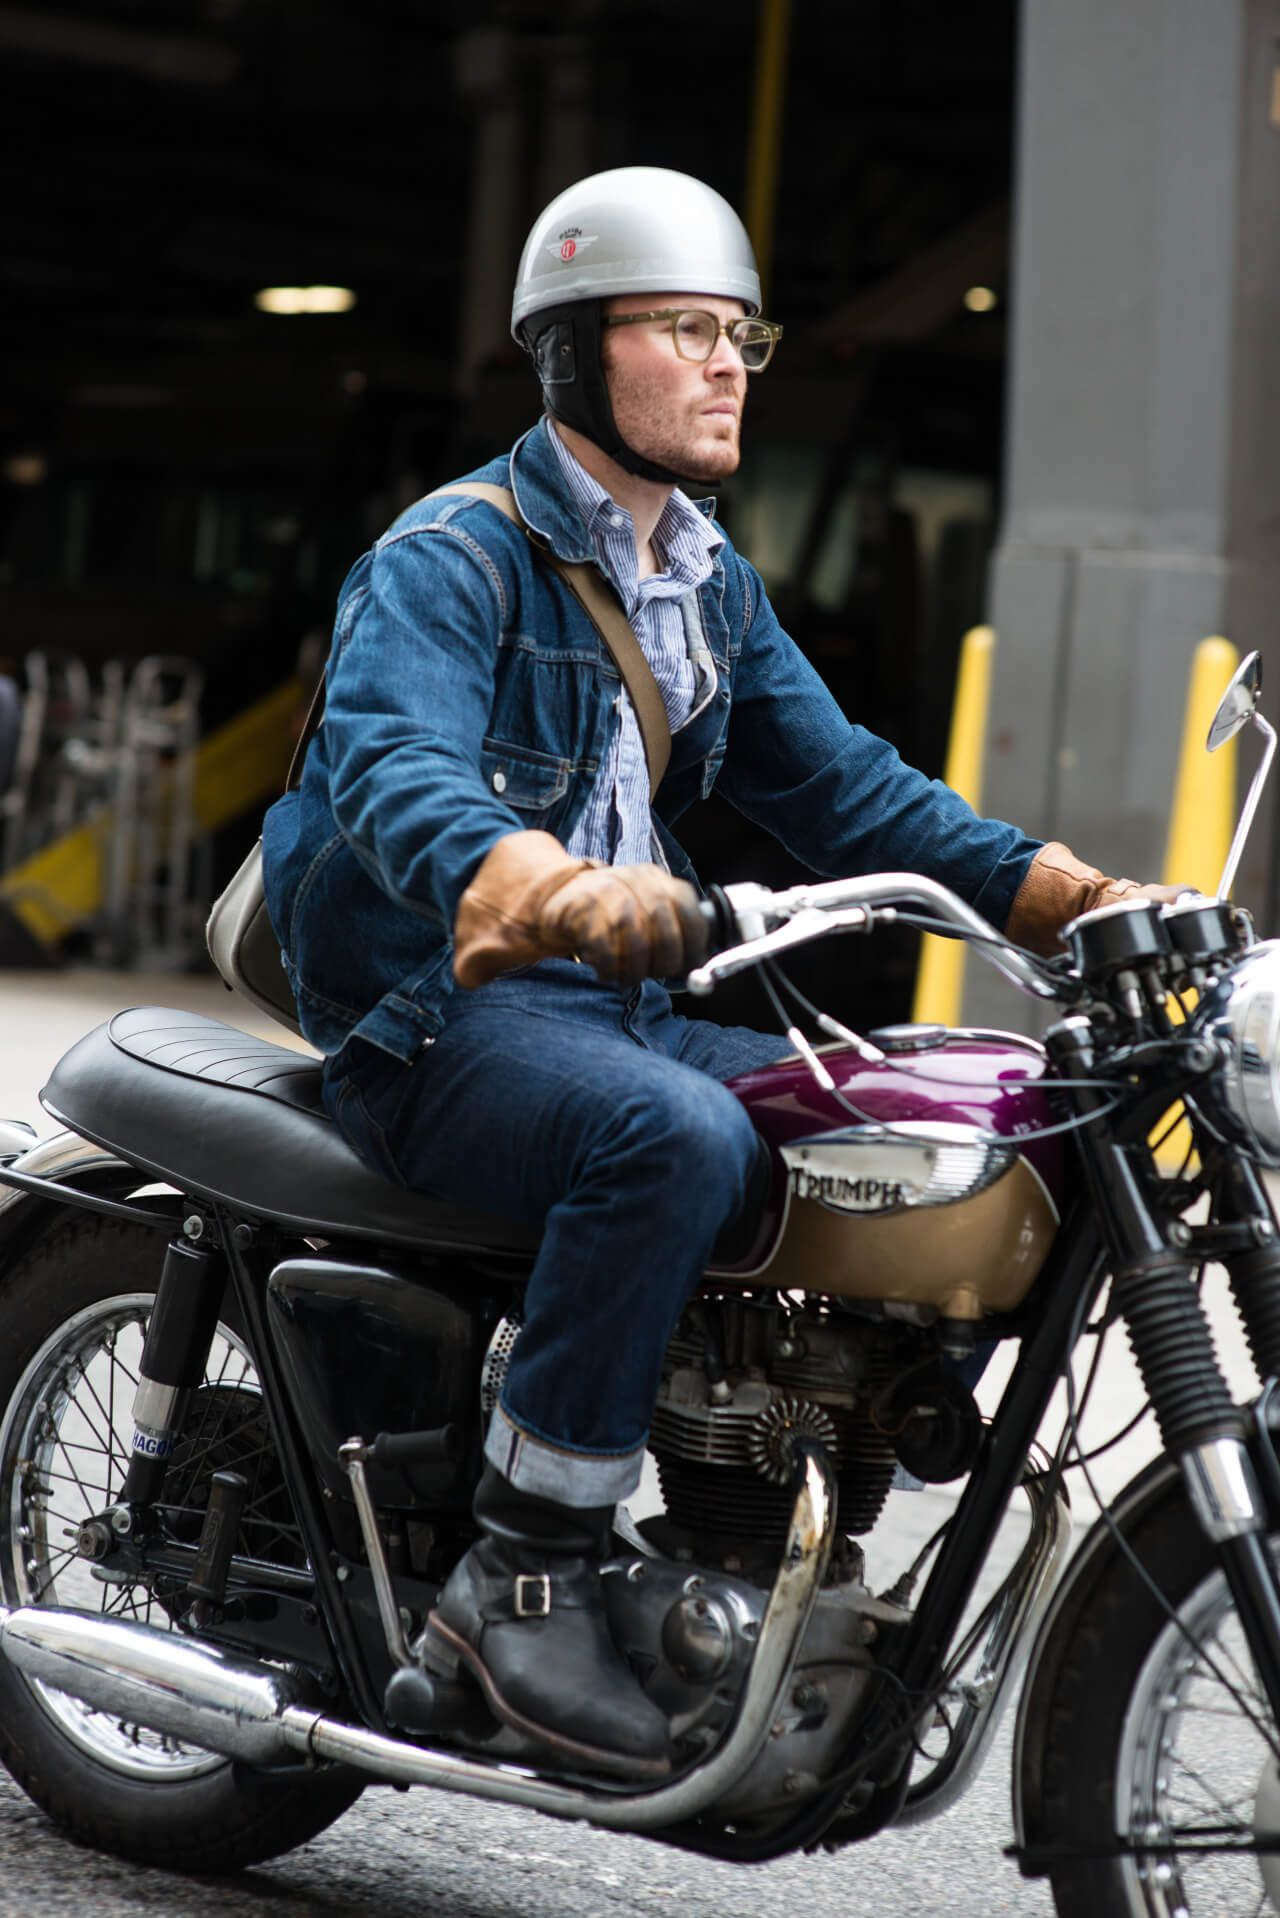 Motorcycle gloves nyc - Nyc Street Style Motorcycle Gloves Jean Jacket Americana Triumph Motorcycles Man